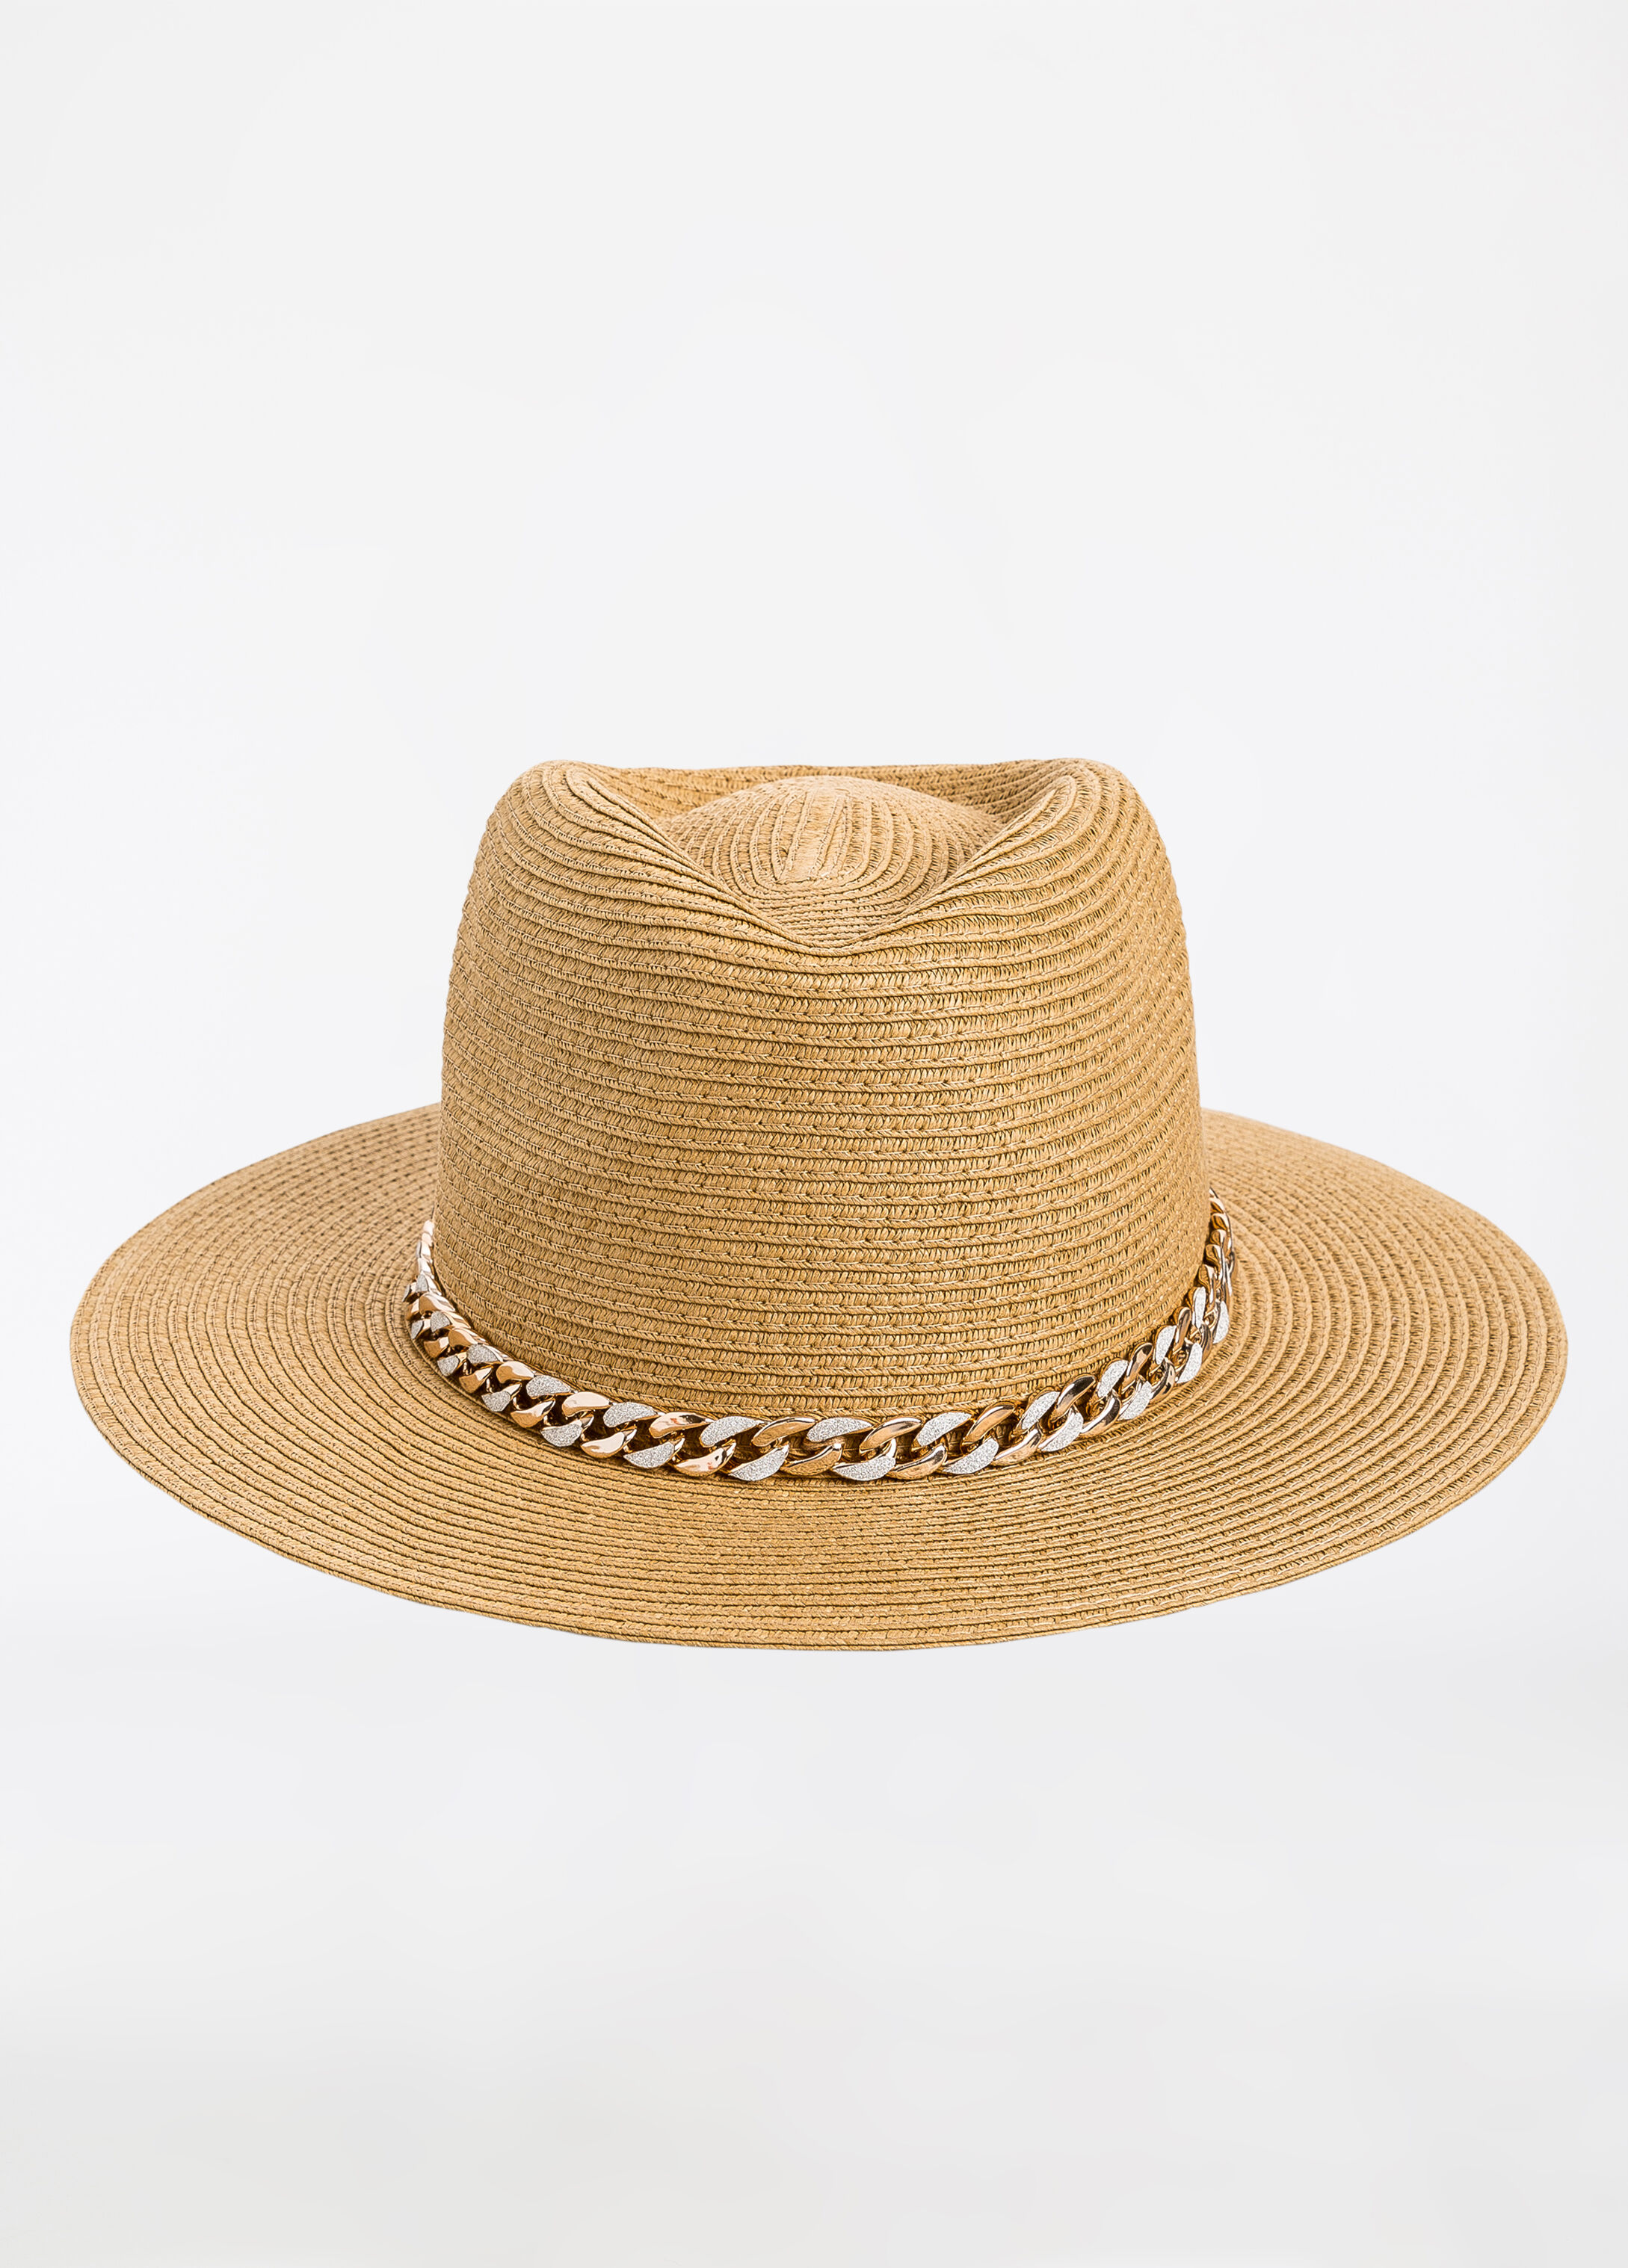 Woven Panama Hat with Chain